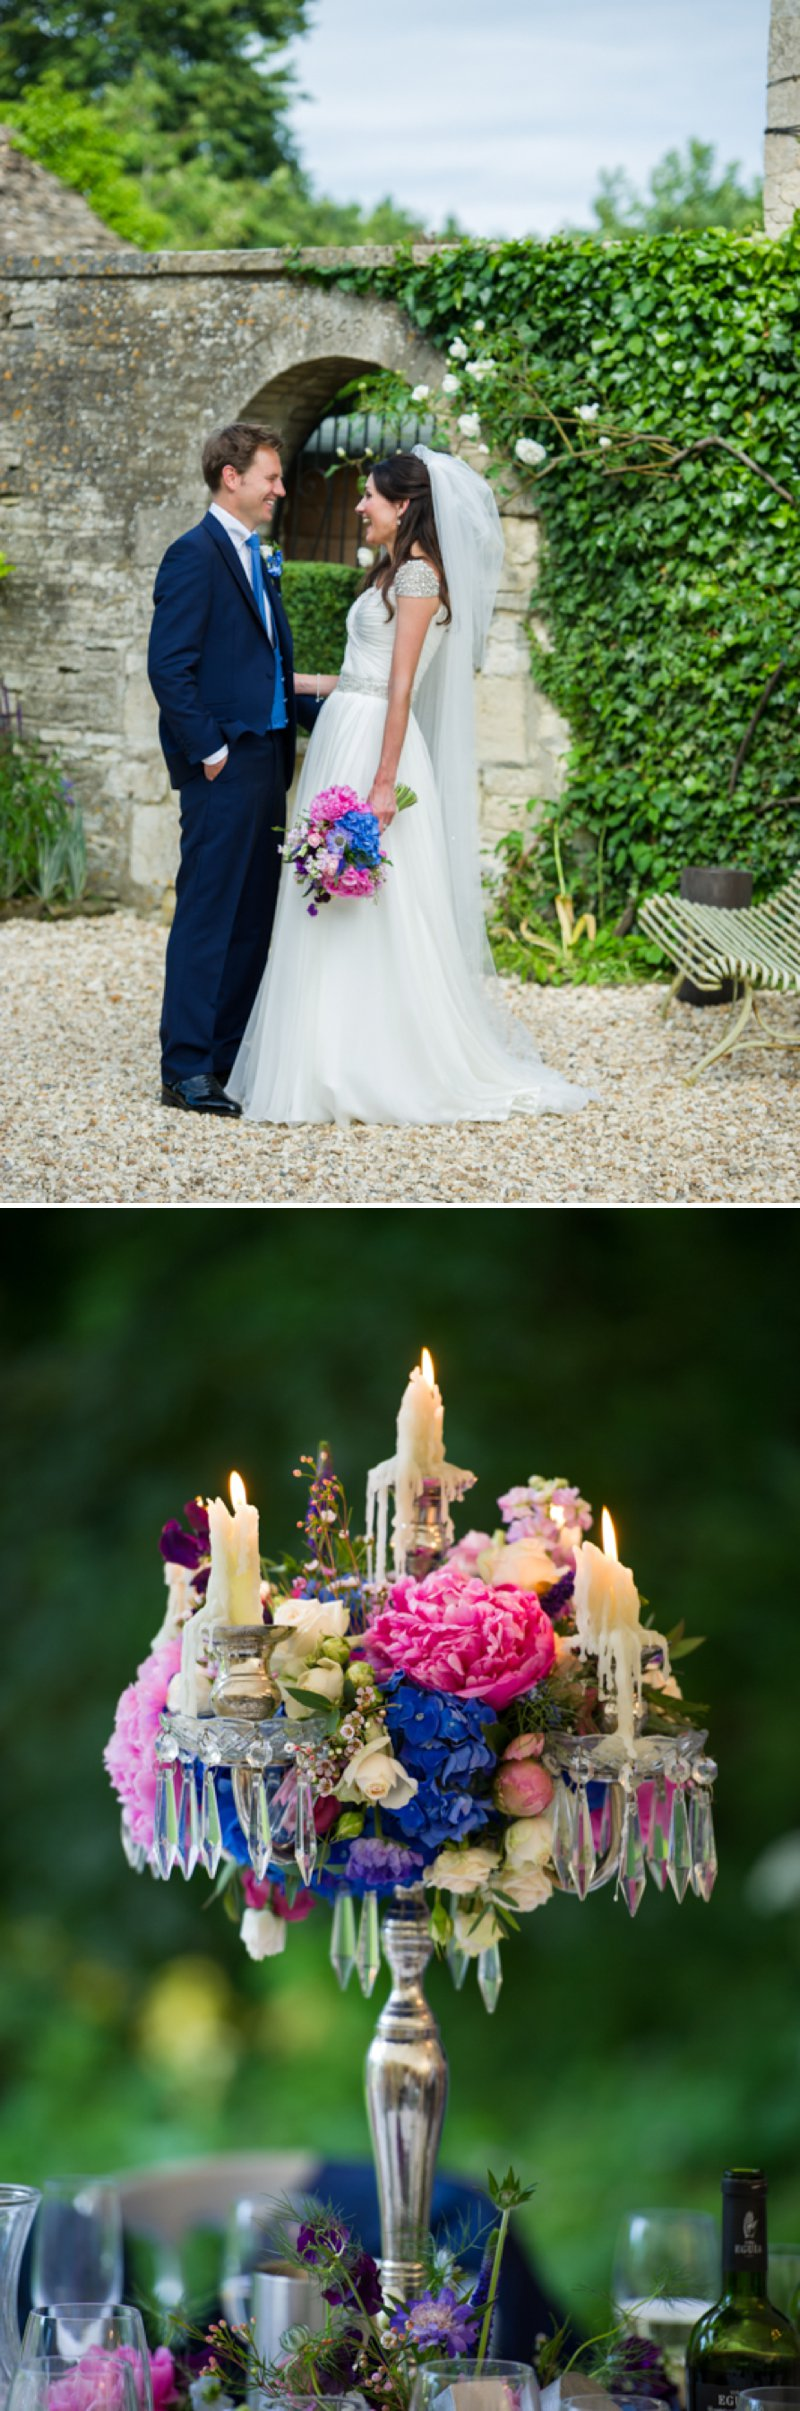 Traditional White Wedding At The Rectory In Wiltshire With Bride In Bespoke Gown And Vibrant Blue Hydrangeas And Hot Pink Peonies In Wedding Flowers 6